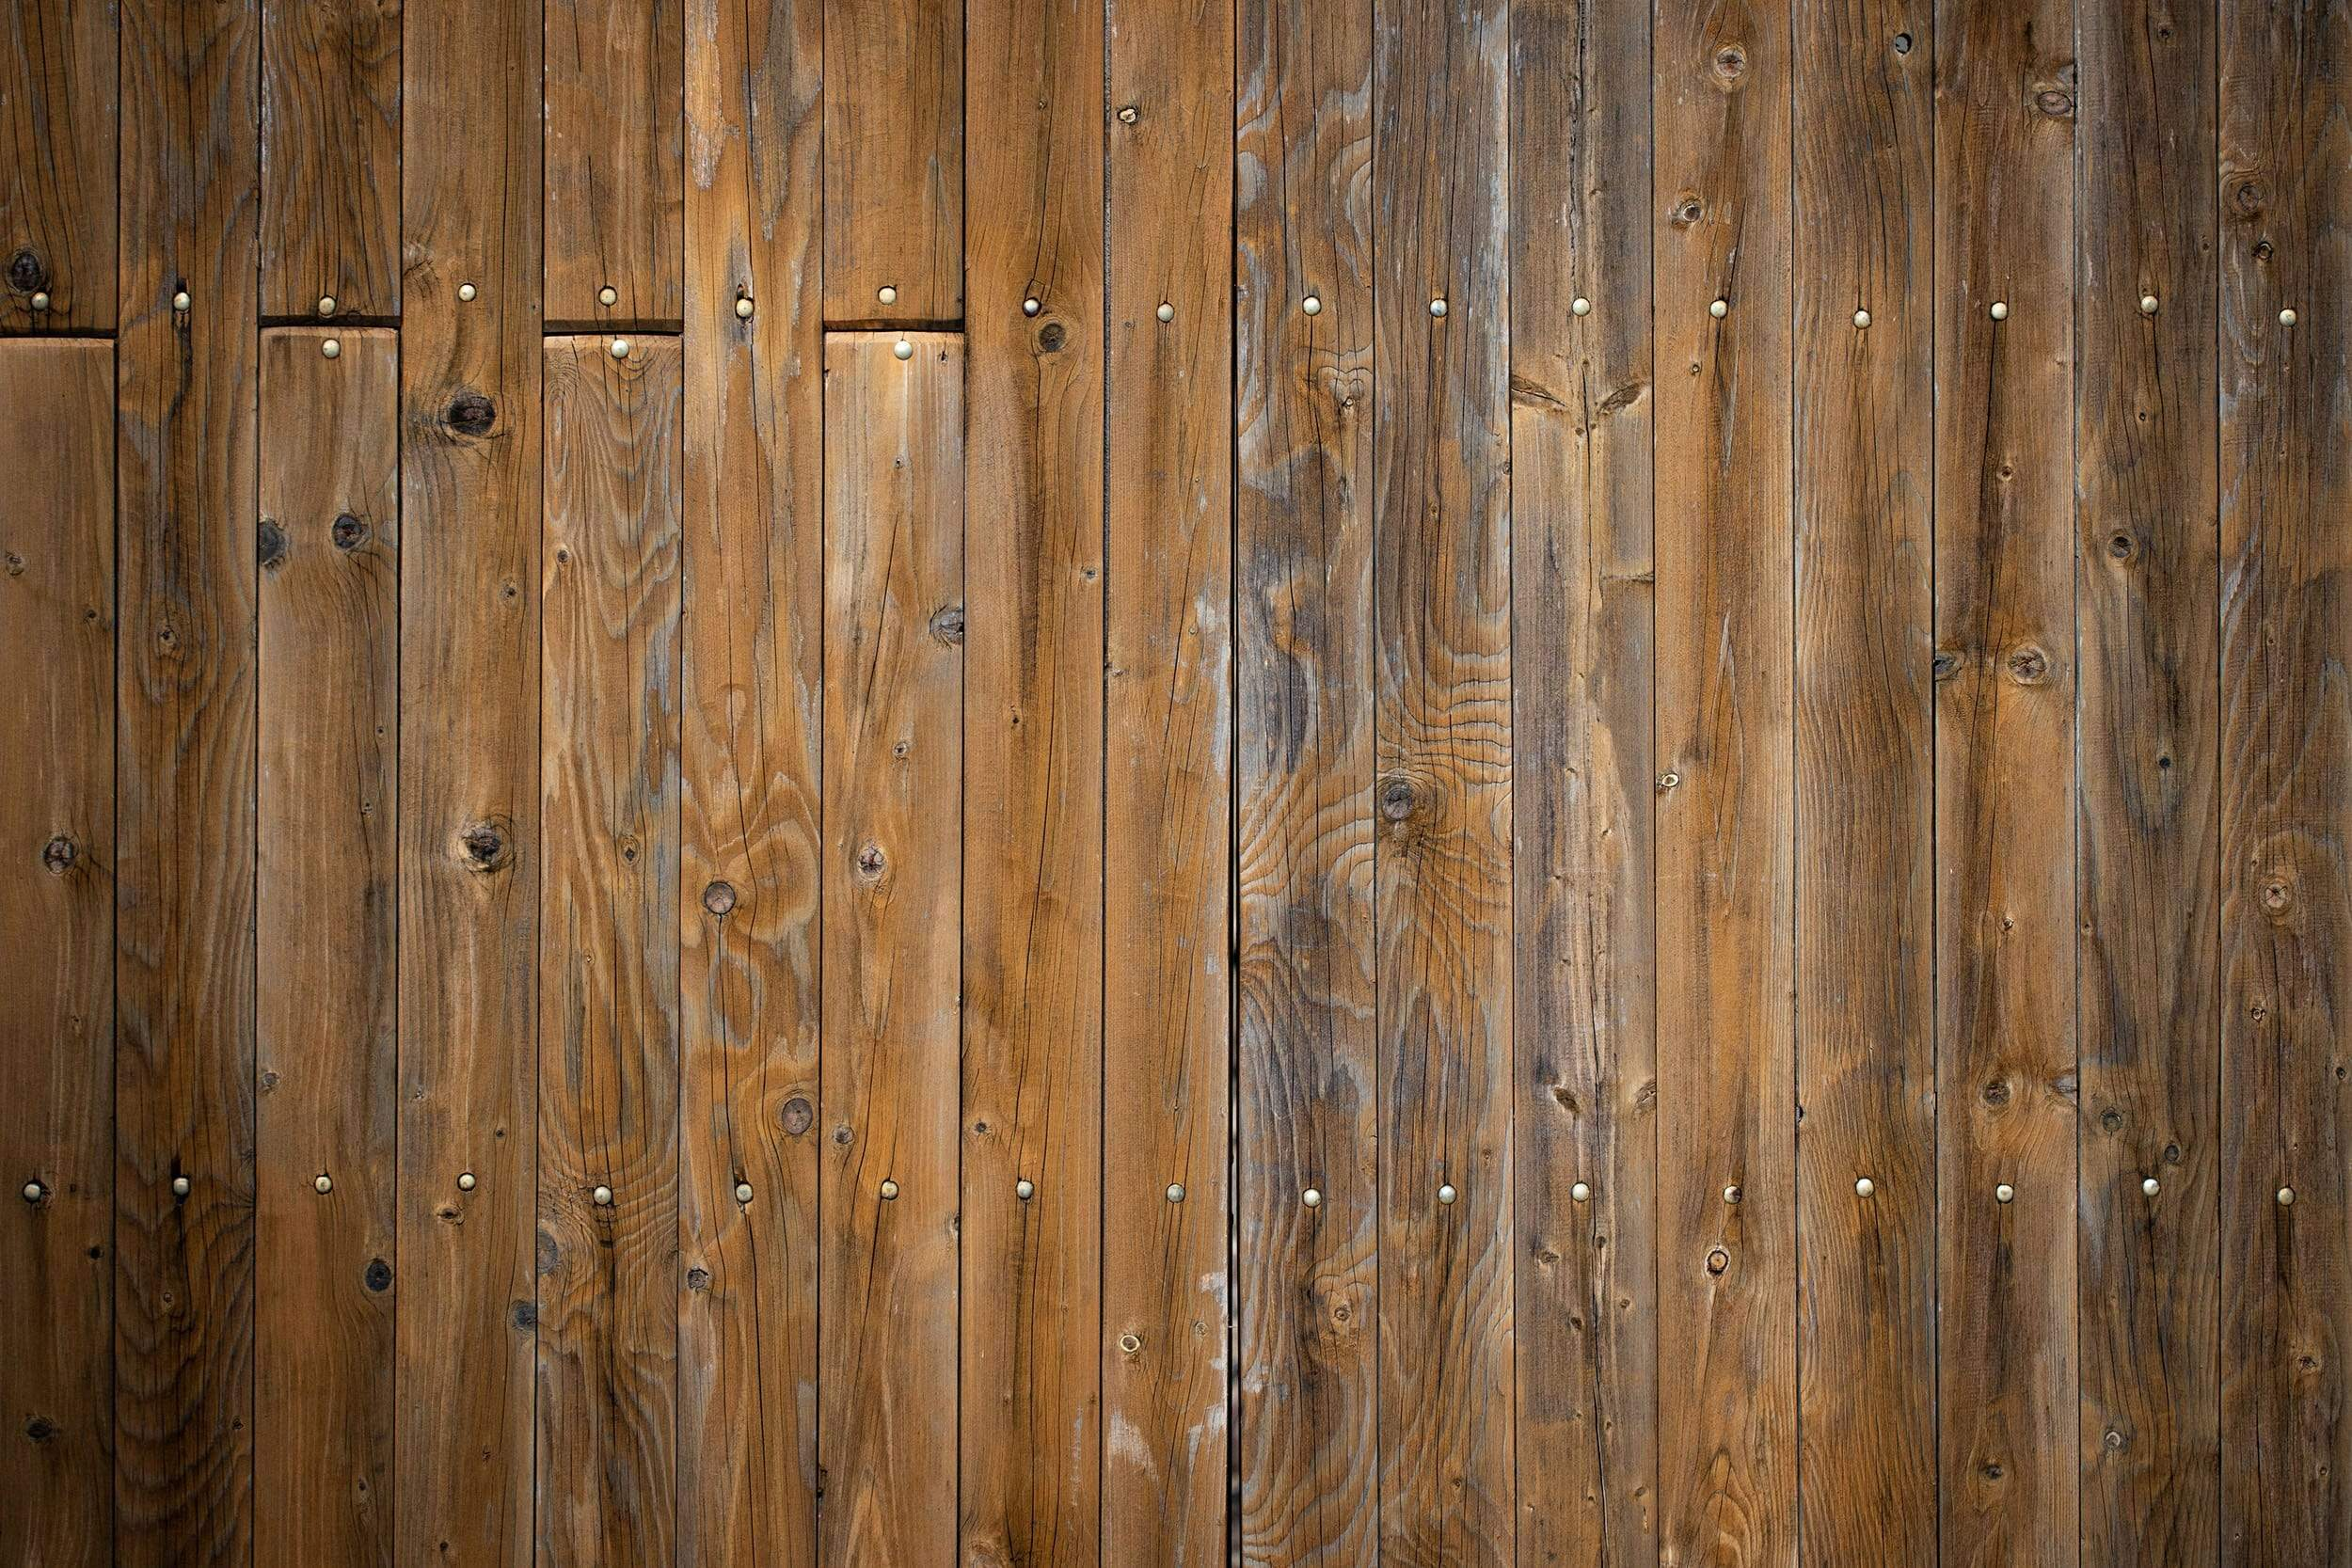 Wood Panels with Rivets